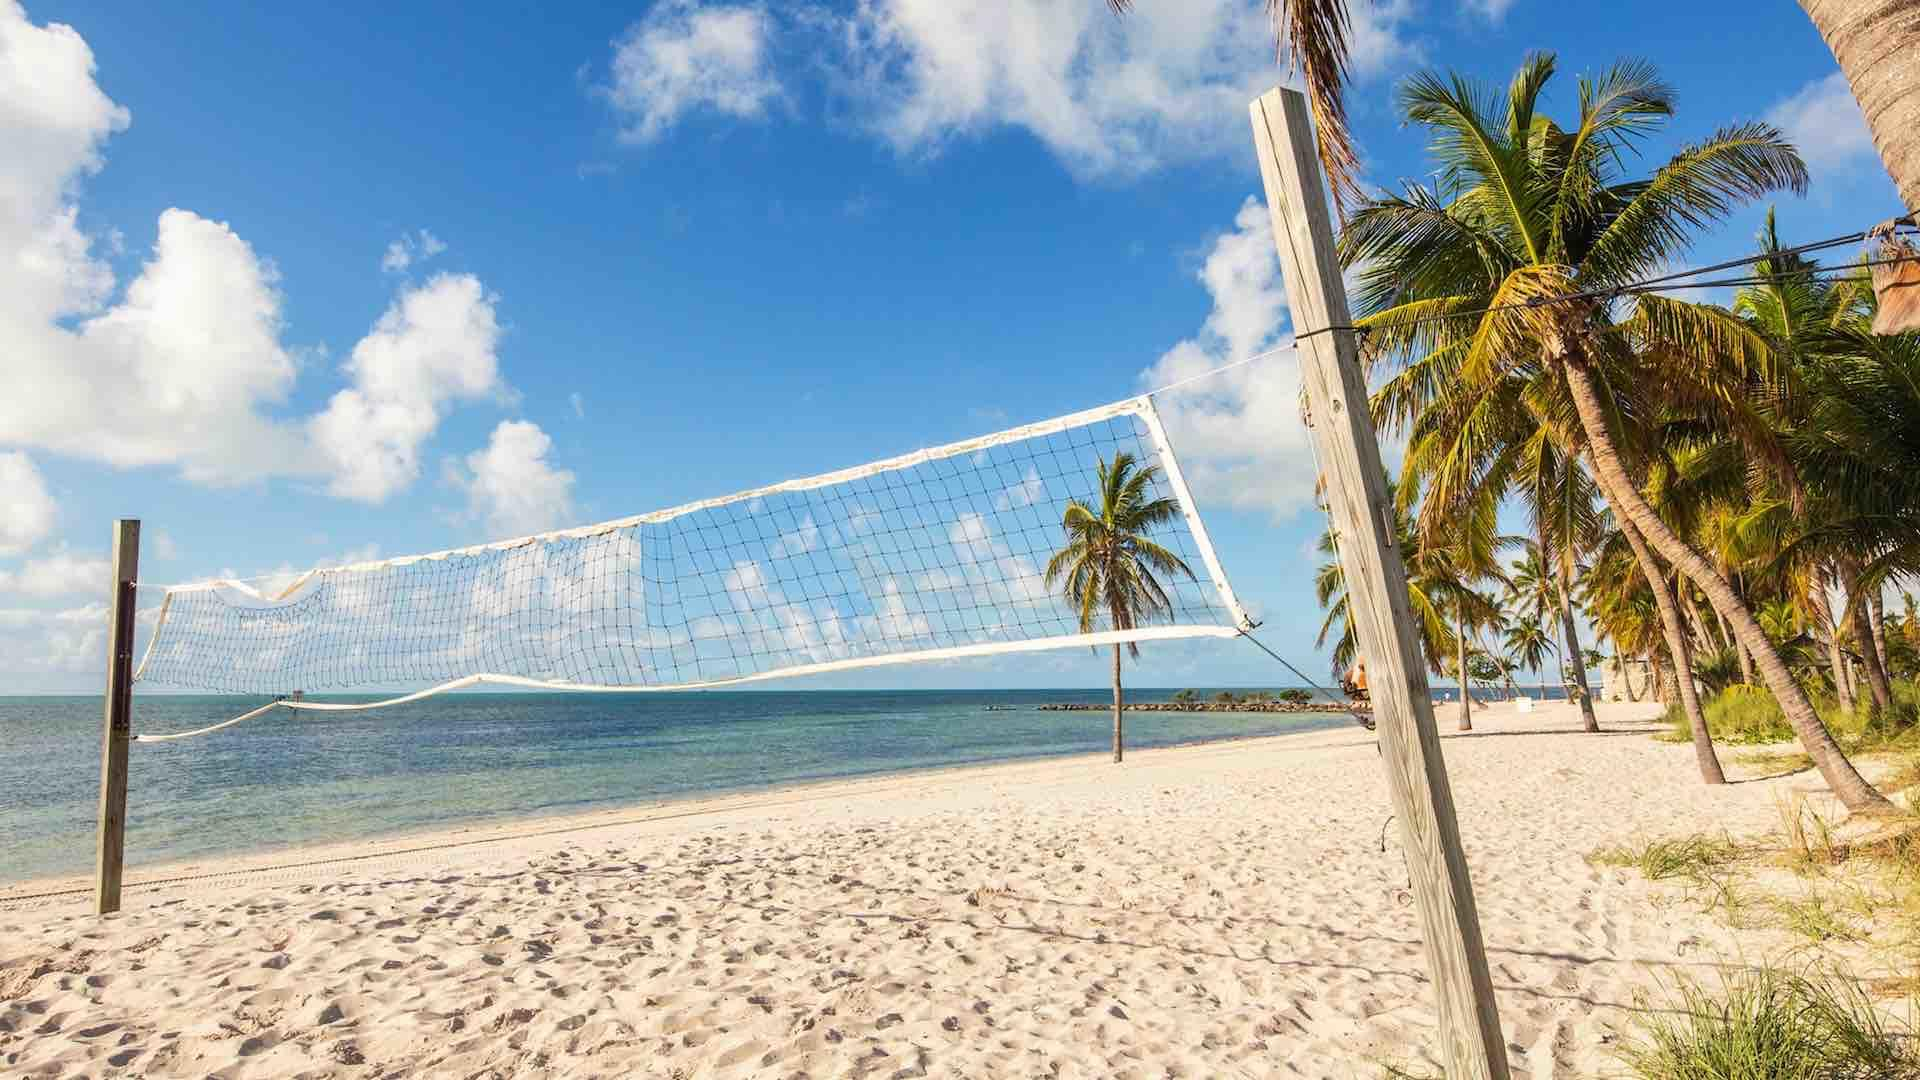 Both nearby beaches have volleyball and other activities...